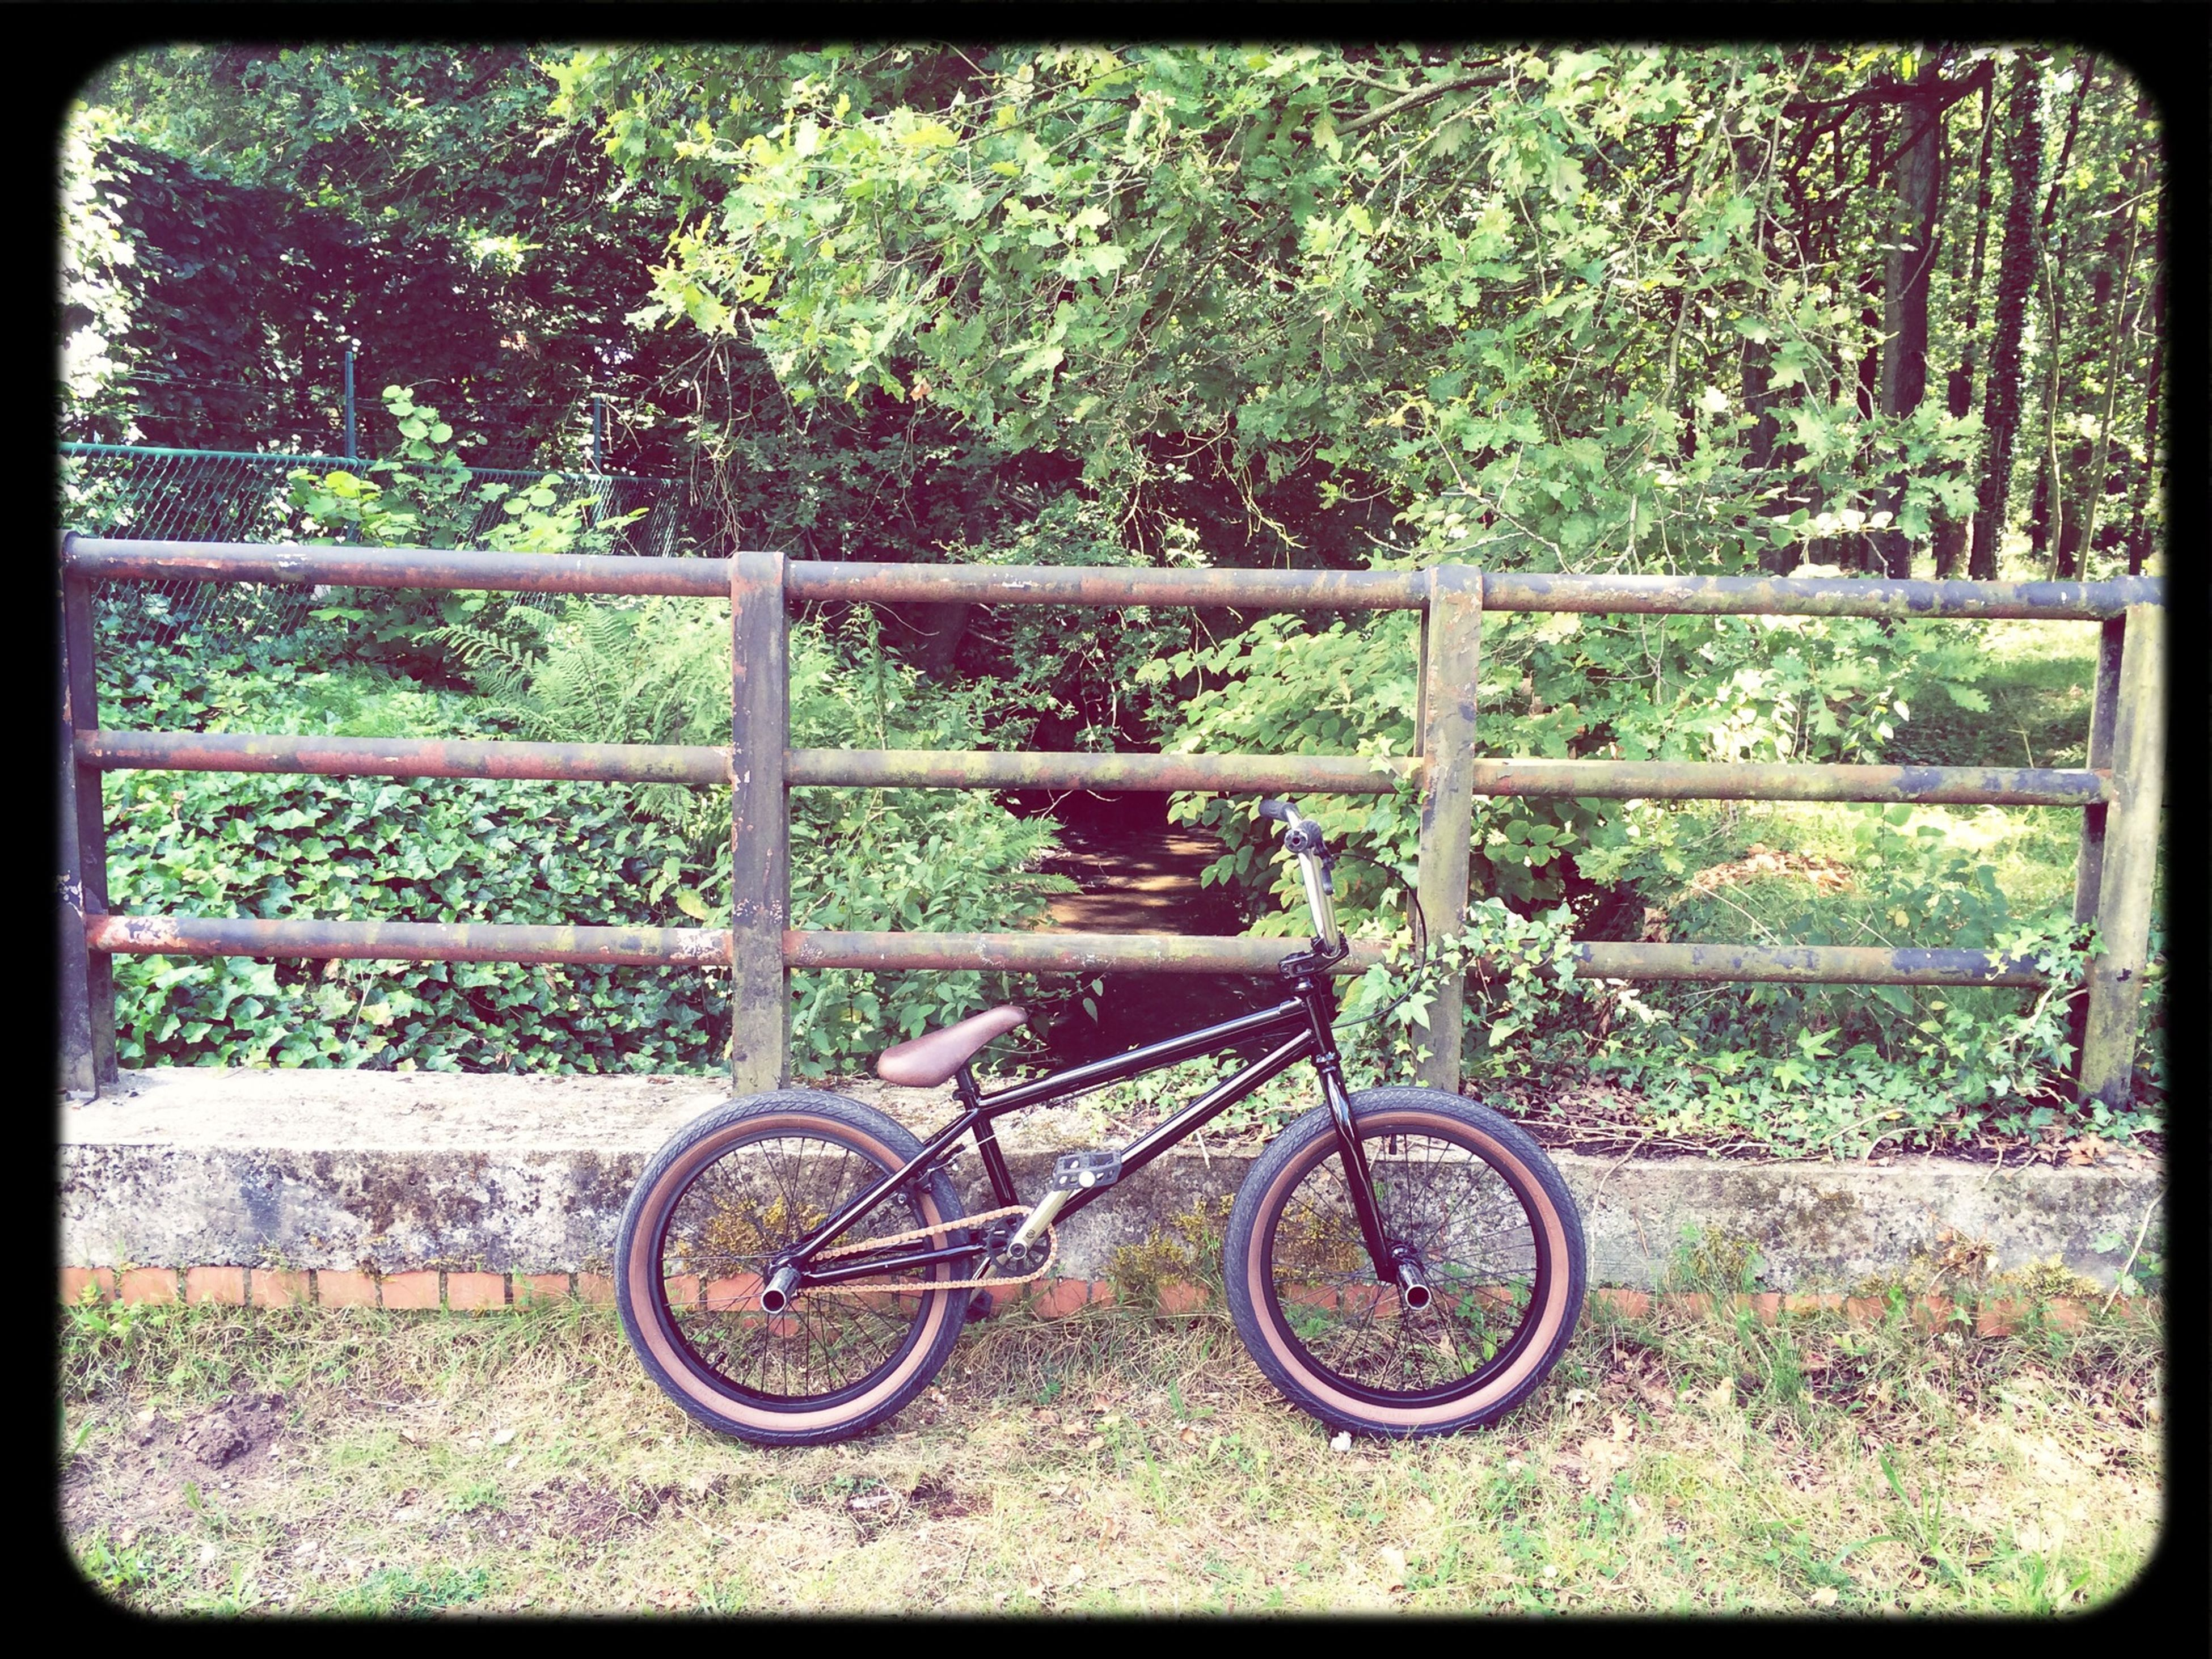 bicycle, tree, transfer print, growth, transportation, auto post production filter, plant, wheel, railing, mode of transport, green color, nature, park - man made space, day, outdoors, land vehicle, metal, sunlight, no people, grass